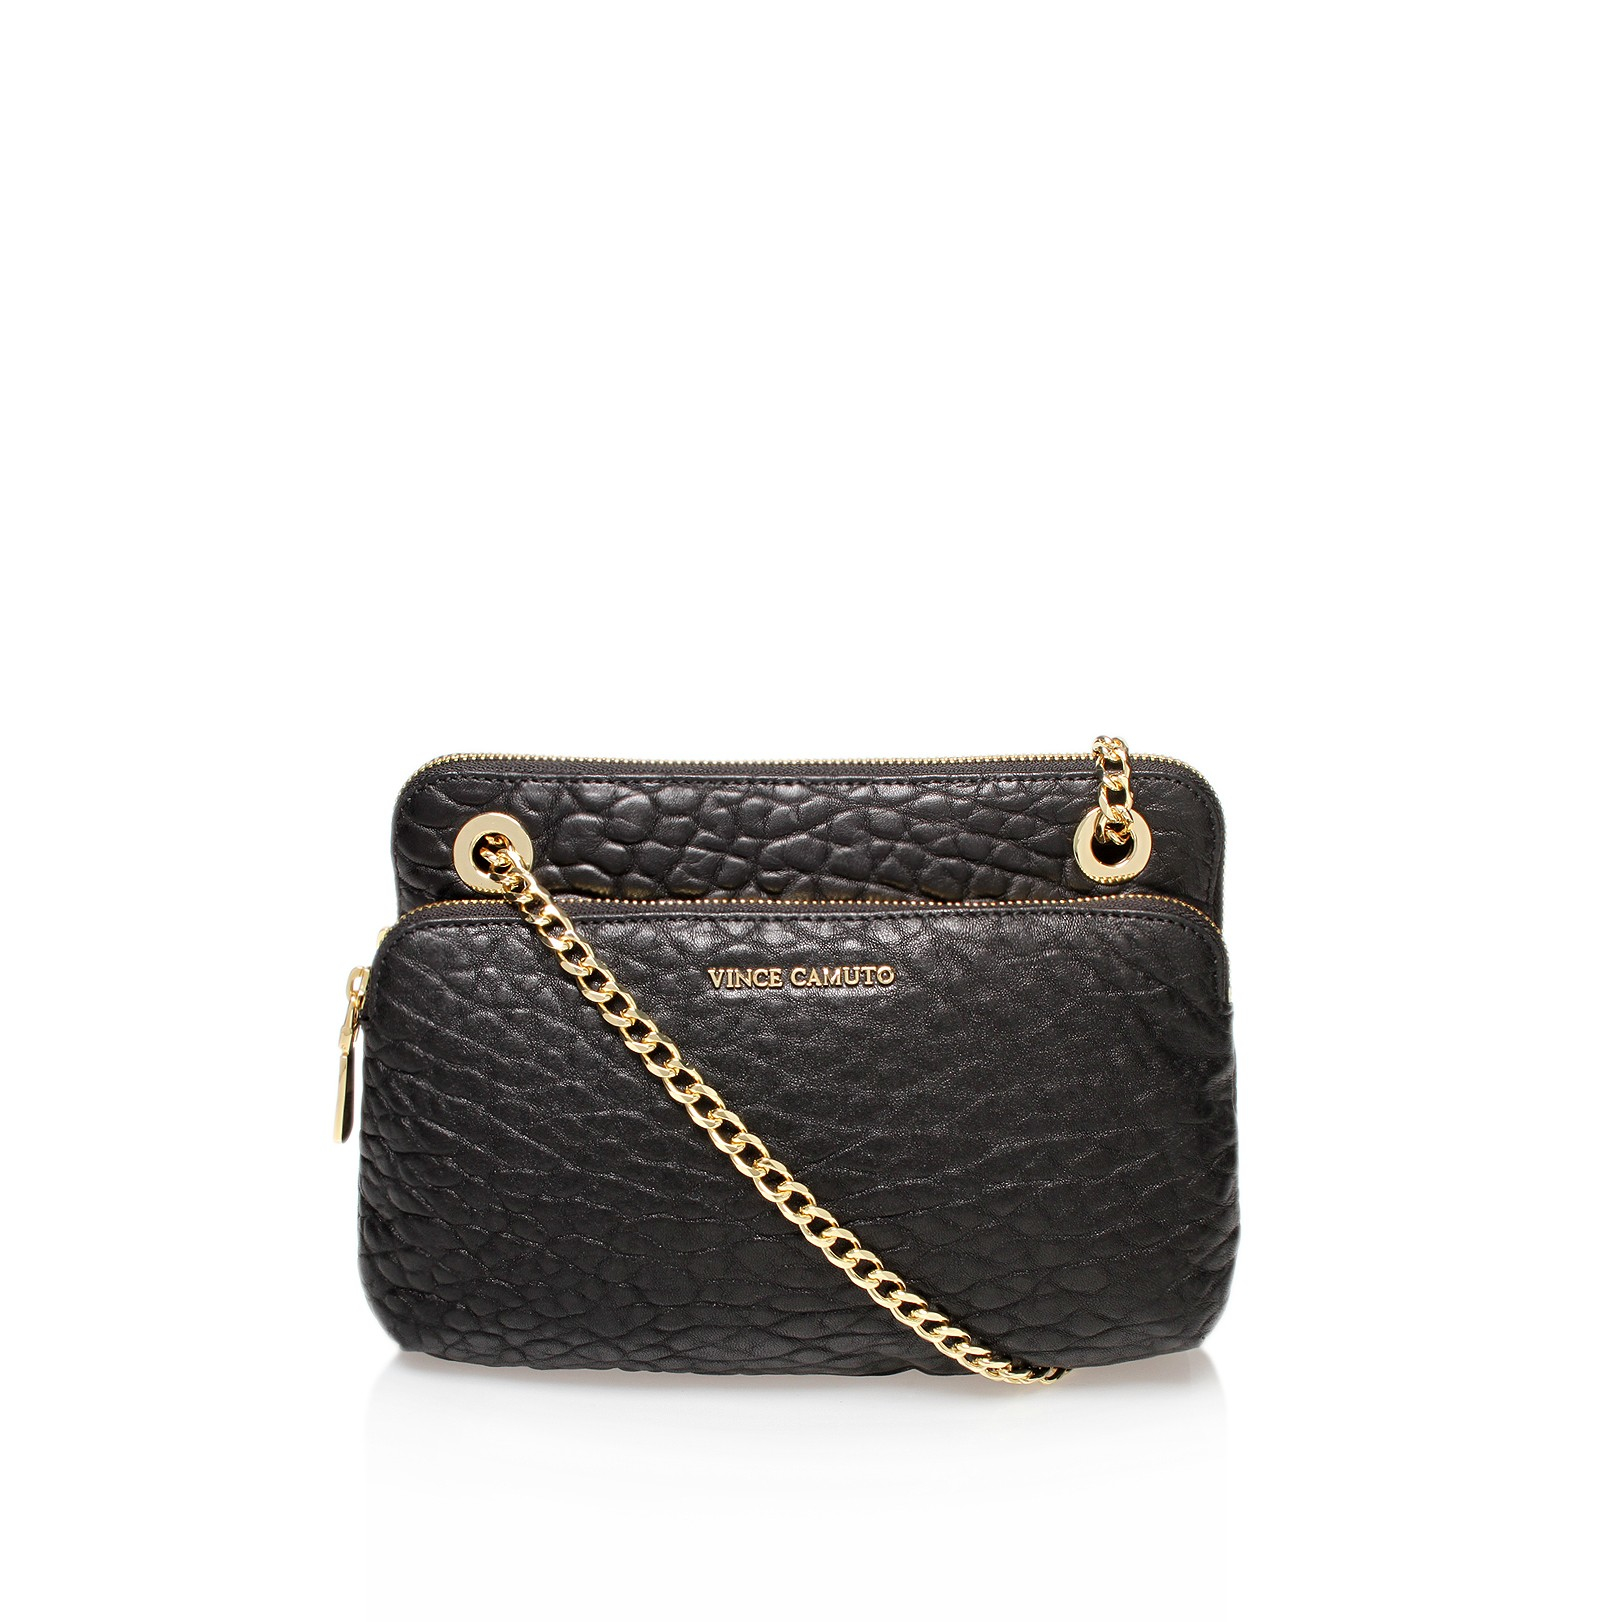 Vince Camuto Leather Lizel Small Crossbody in Black